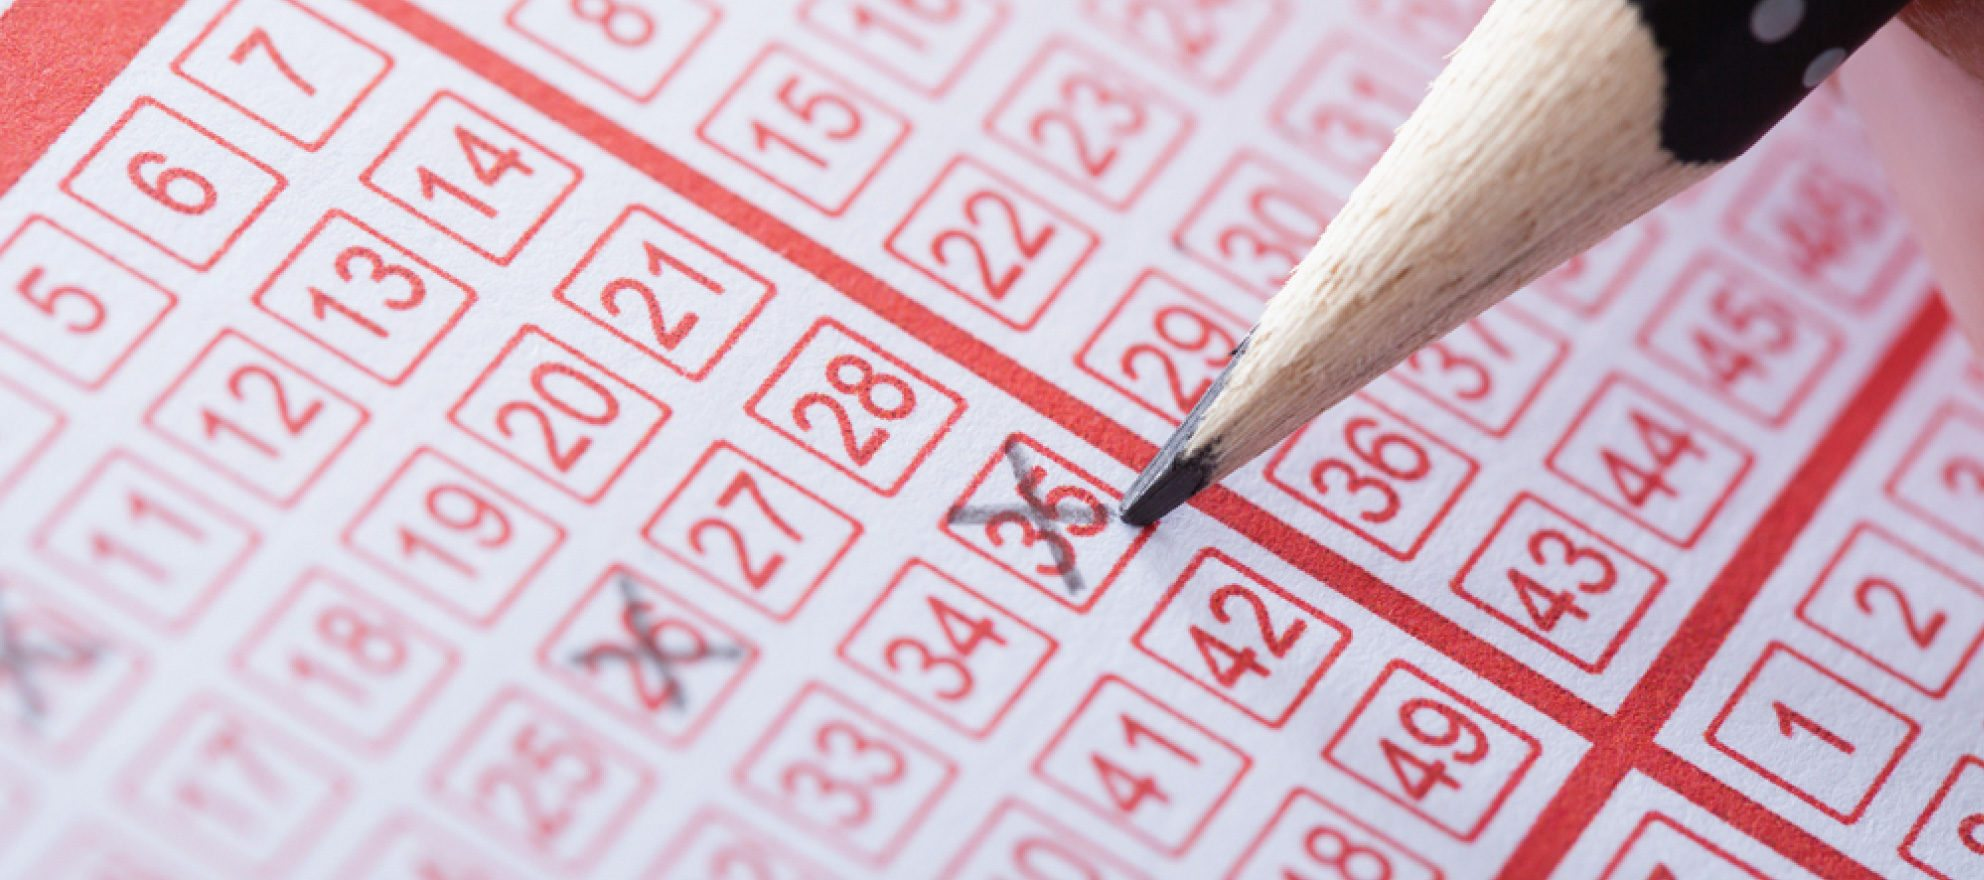 Real estate agent's passion, work ethic unfazed by $7M jackpot